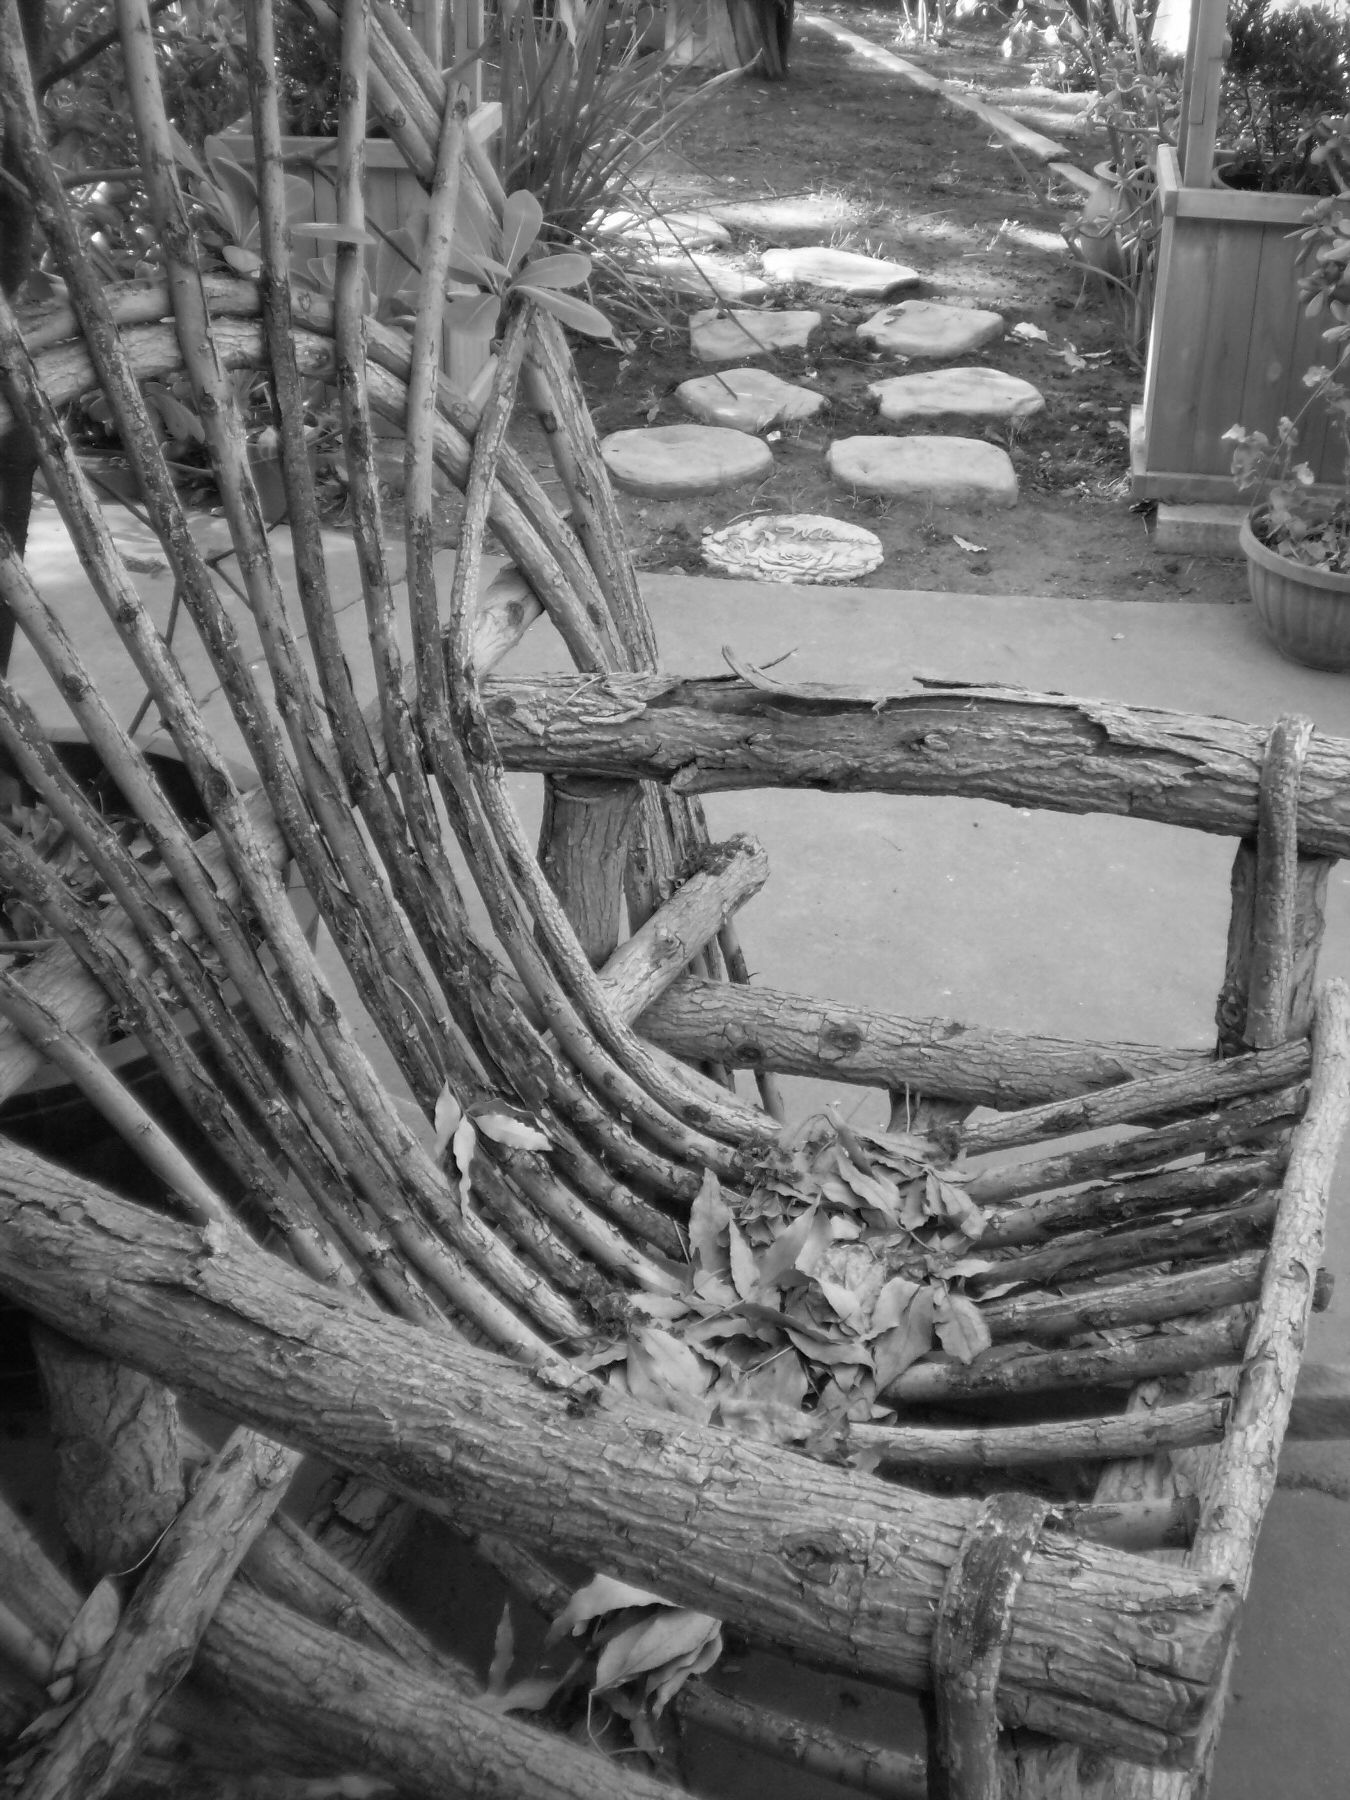 rustic lawn chair (Mom's patio,2008)